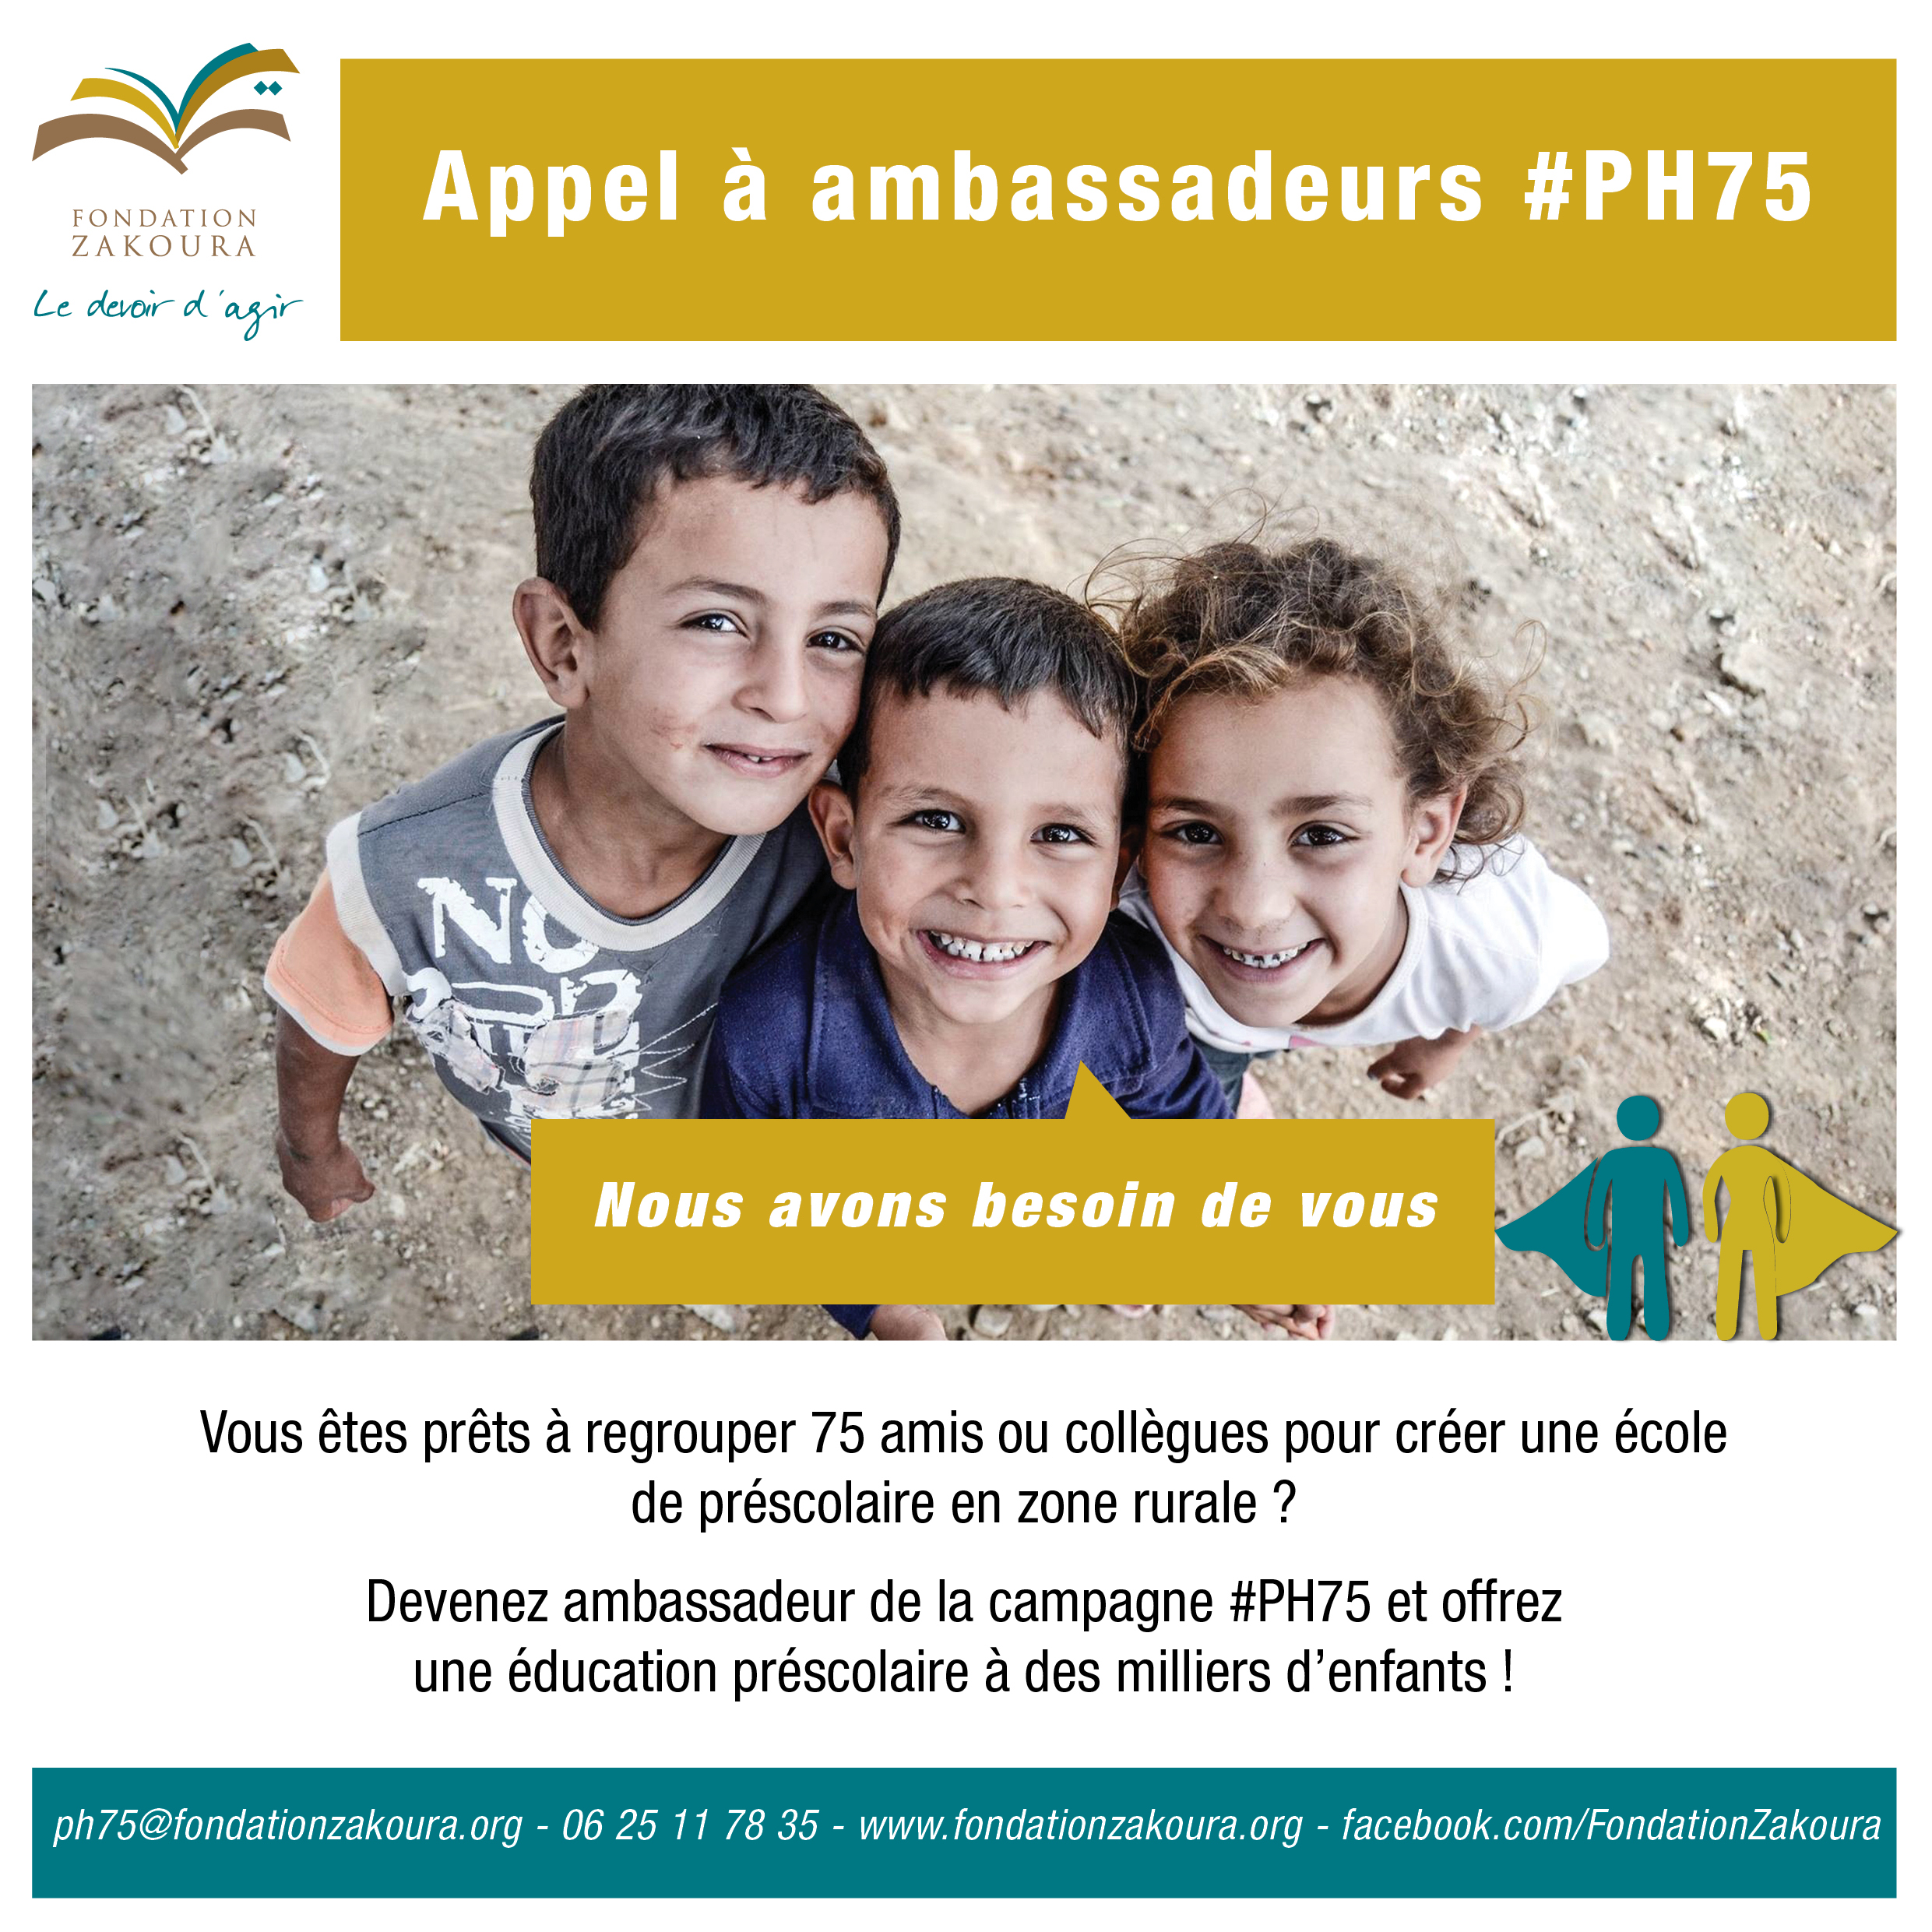 Appel à ambassadeurs #PH75 !